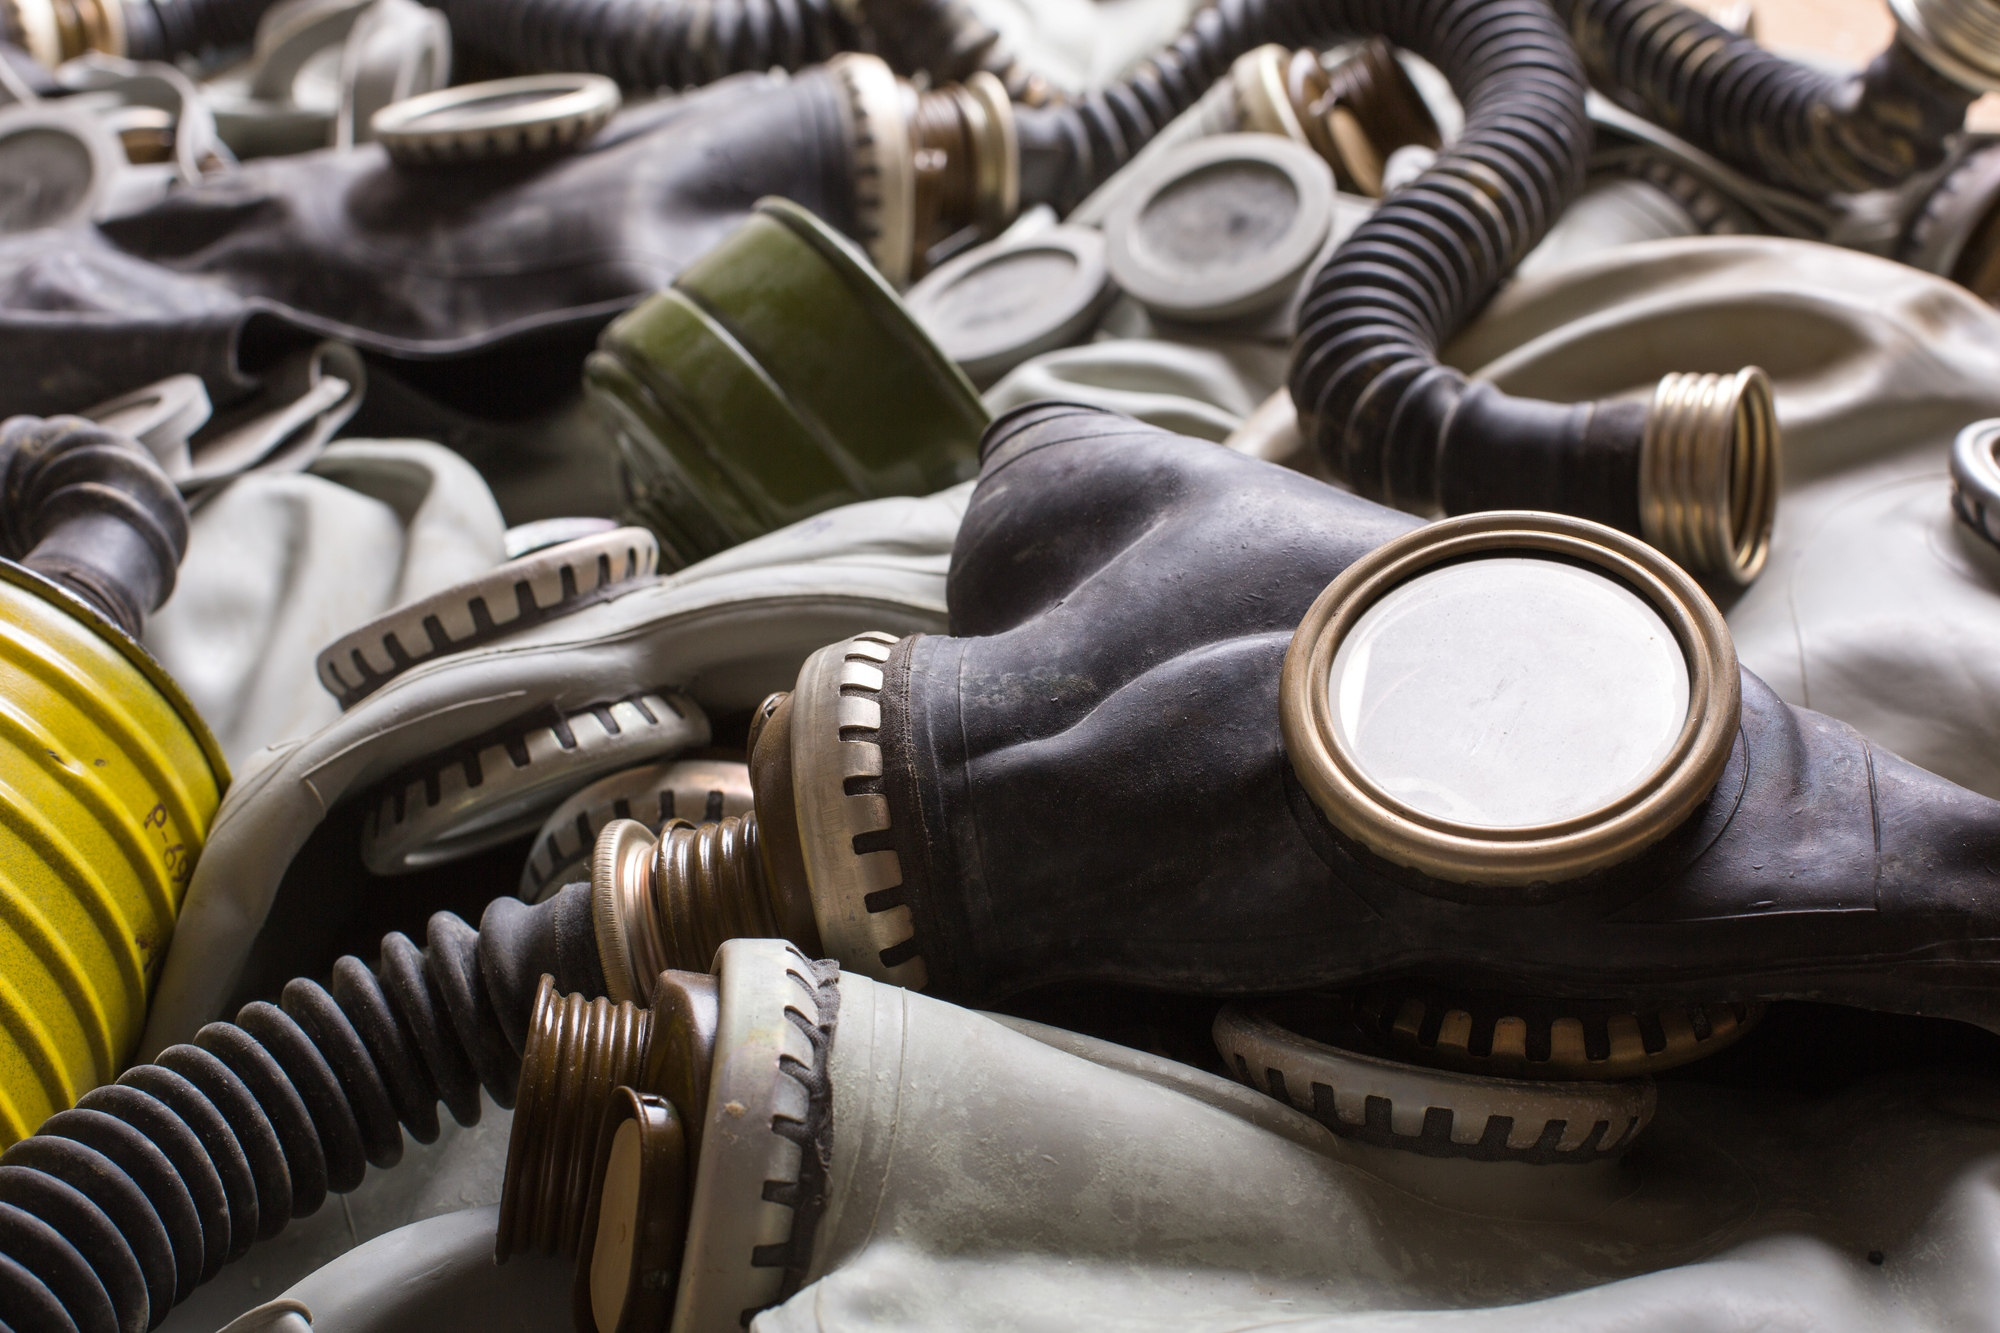 Closeup of old dirty gas masks